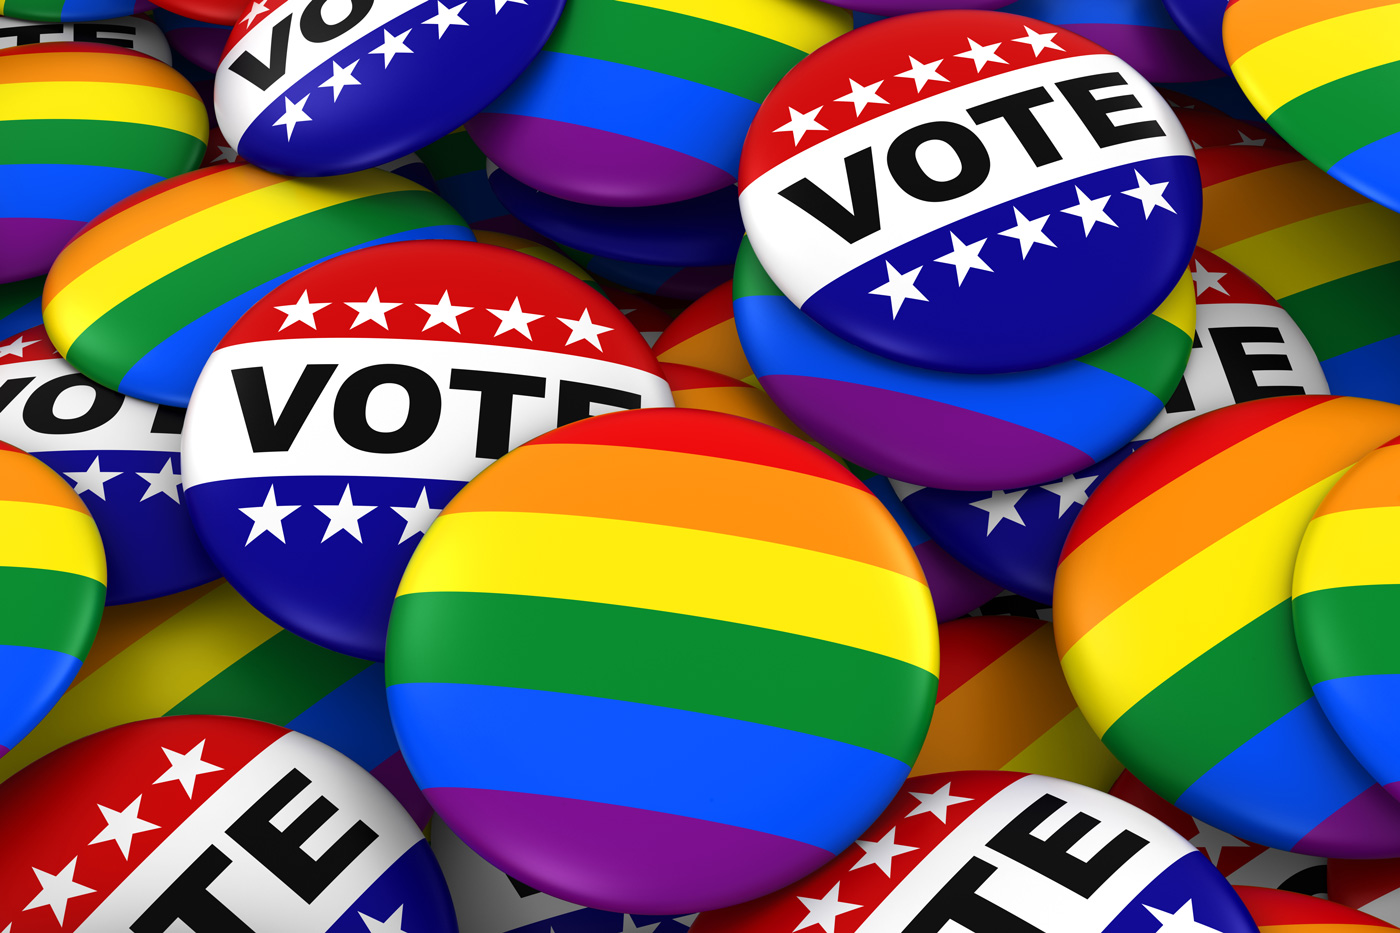 Vote for Gay Rights Concept – Gay Pride and Vote Badges 3D Illus